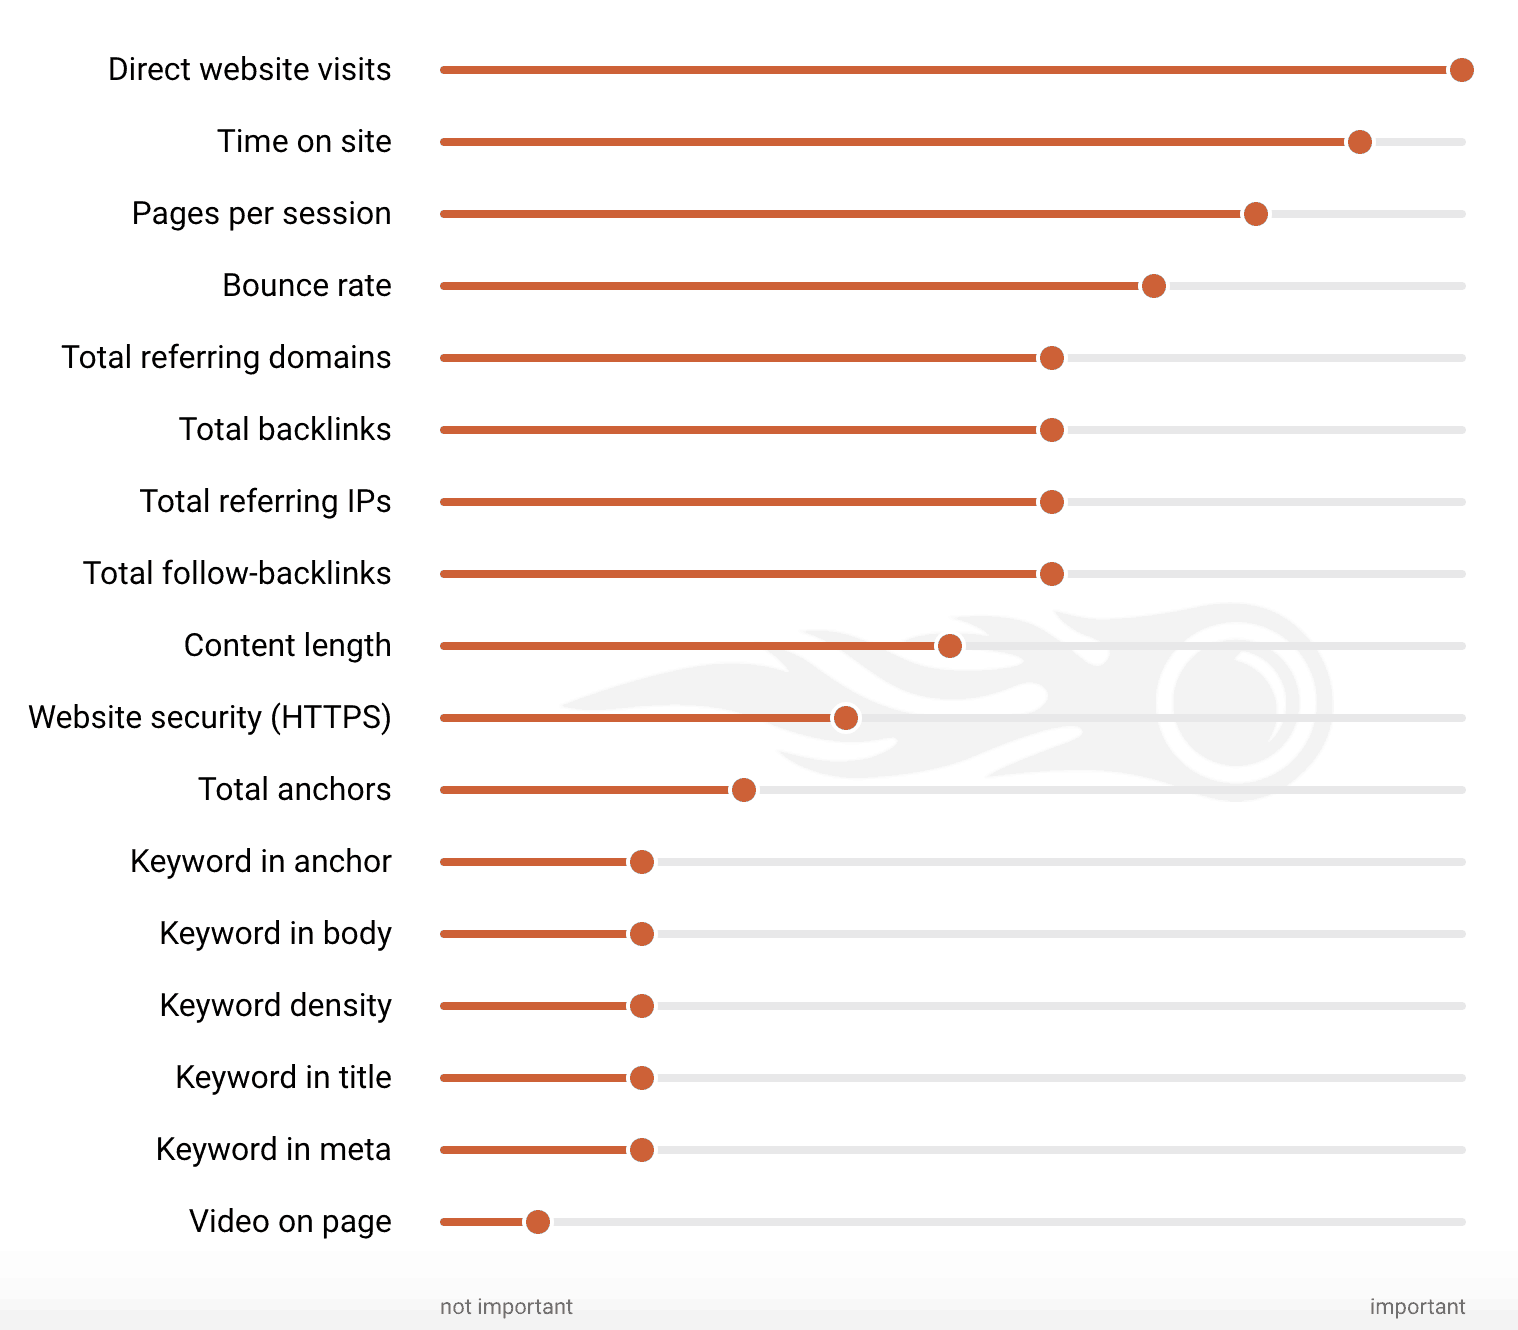 semrush-ranking-factors